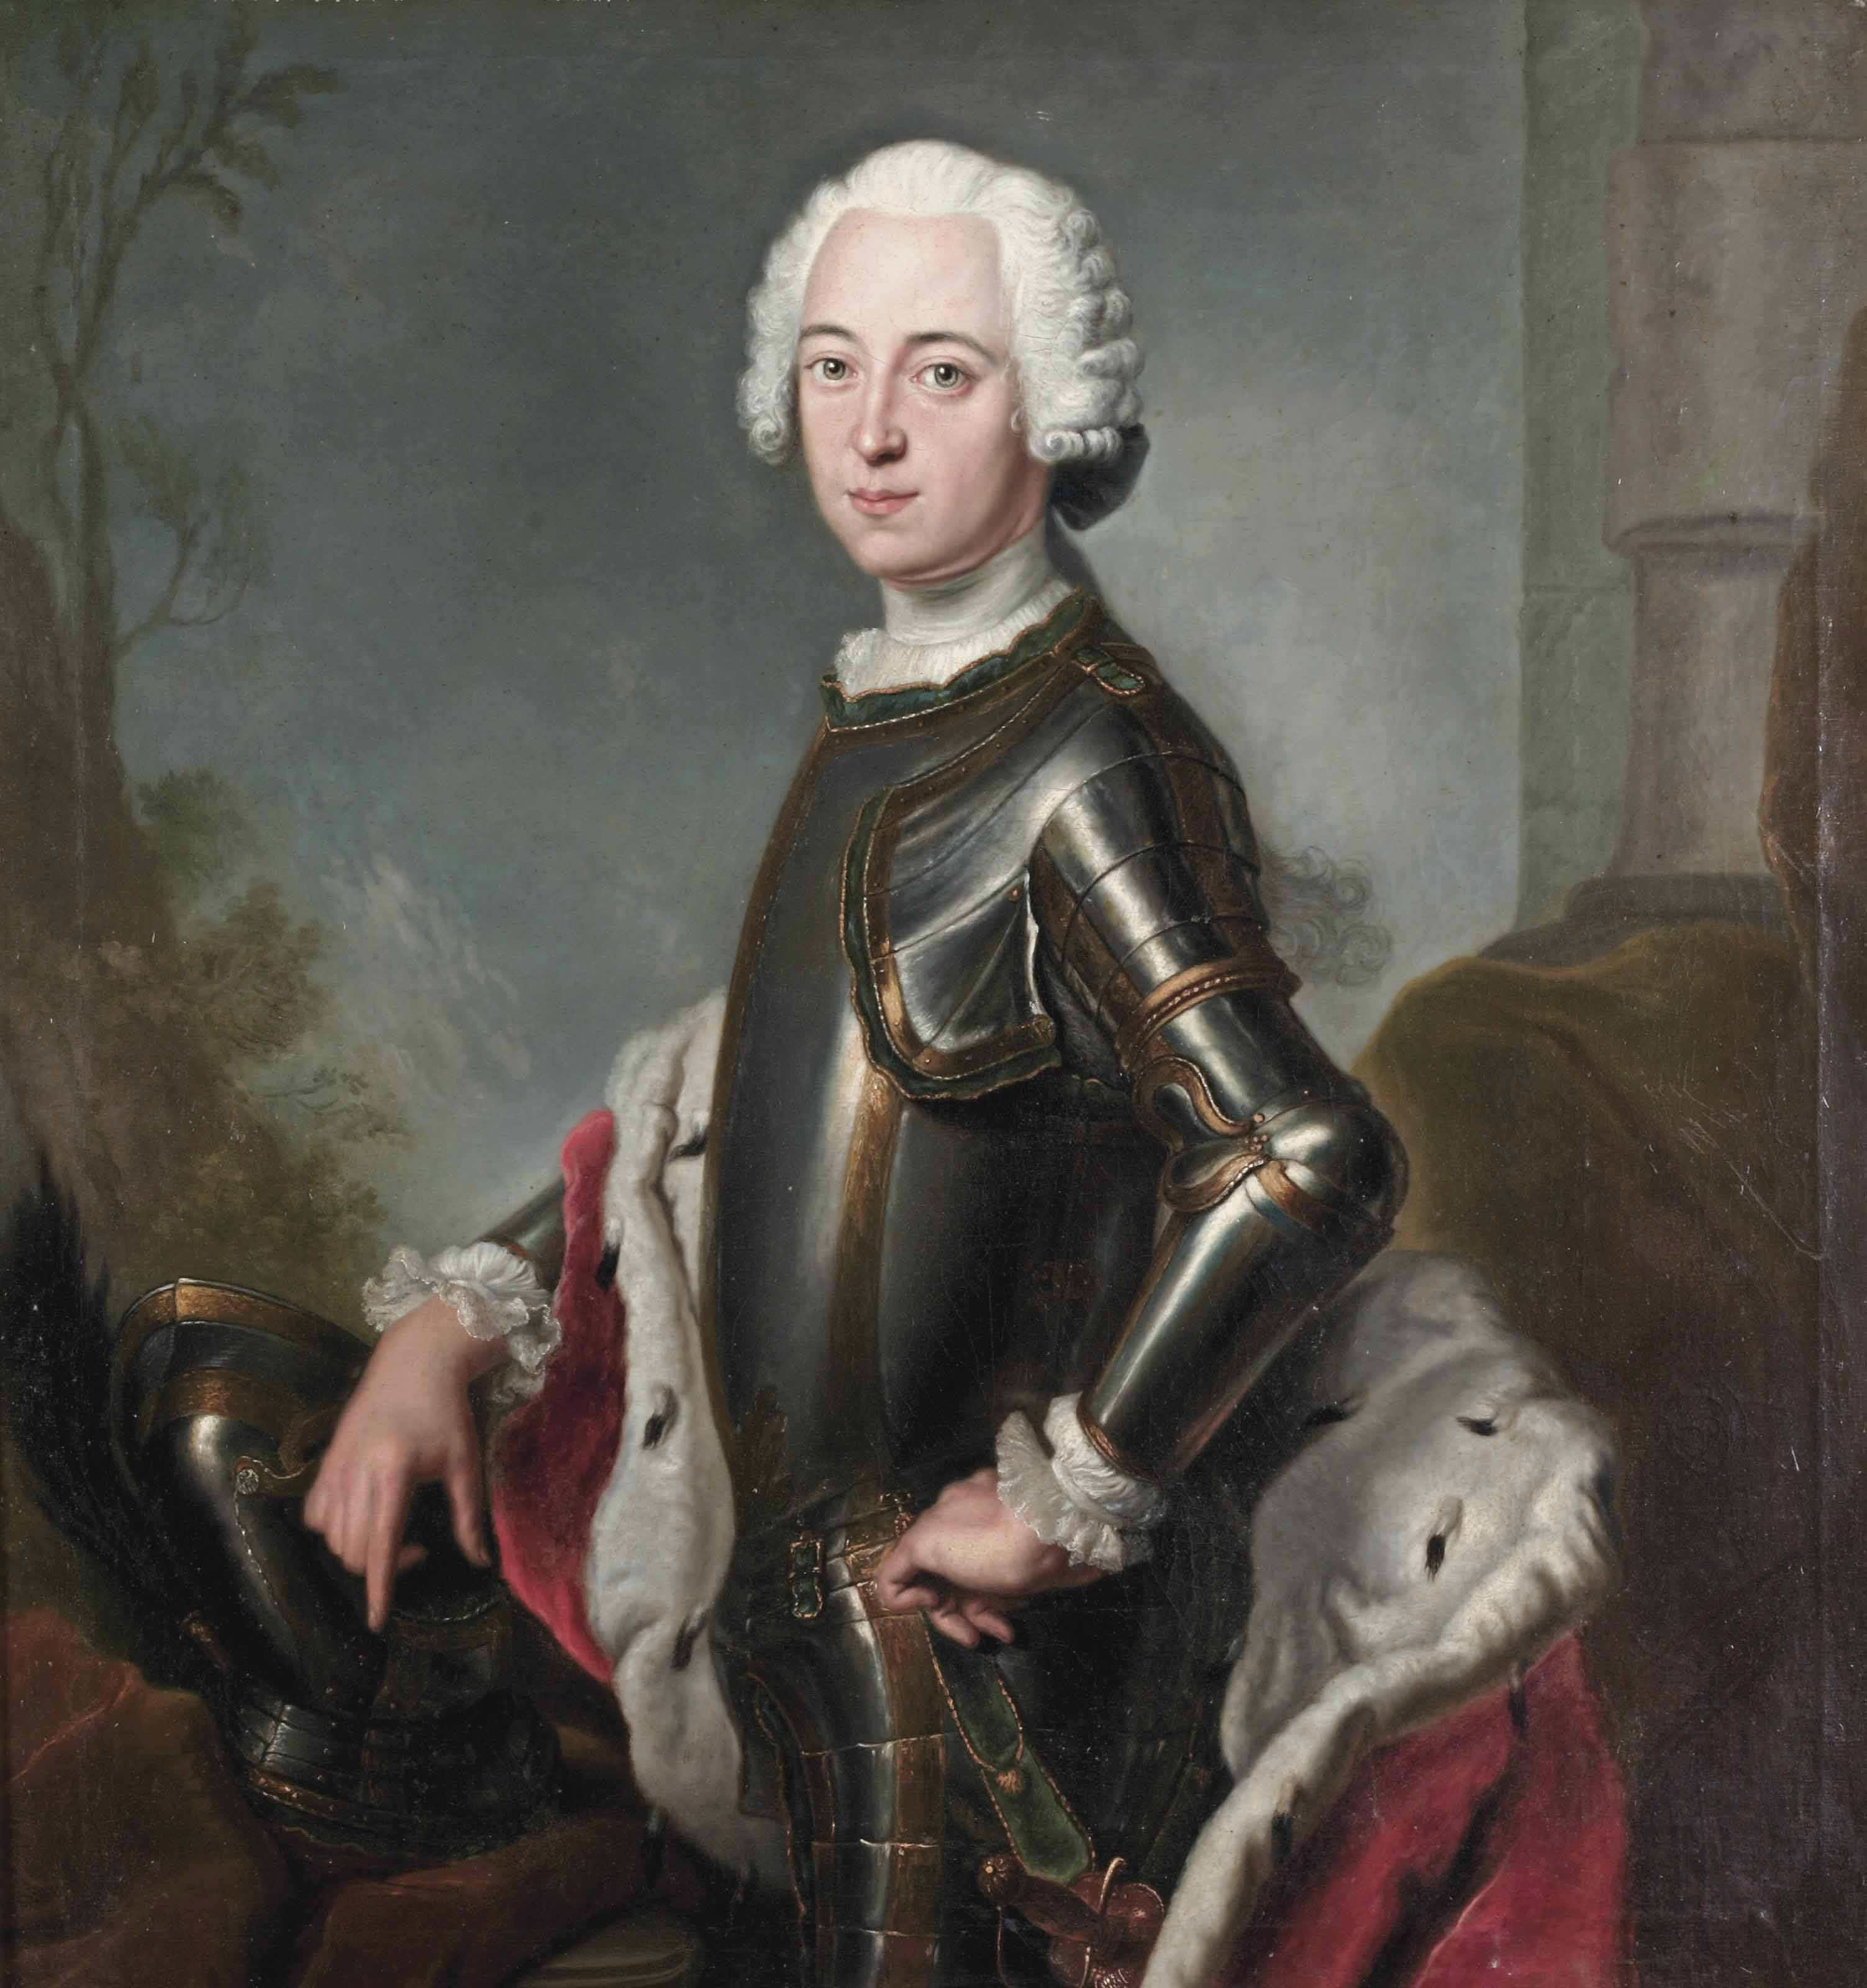 Portrait of Friedrich, Duke of Mecklenburg-Schwerin (1717-1785), called Friedrick der Fromme, half-length, in armour and an ermine-lined red cloak, standing near a column in a landscape